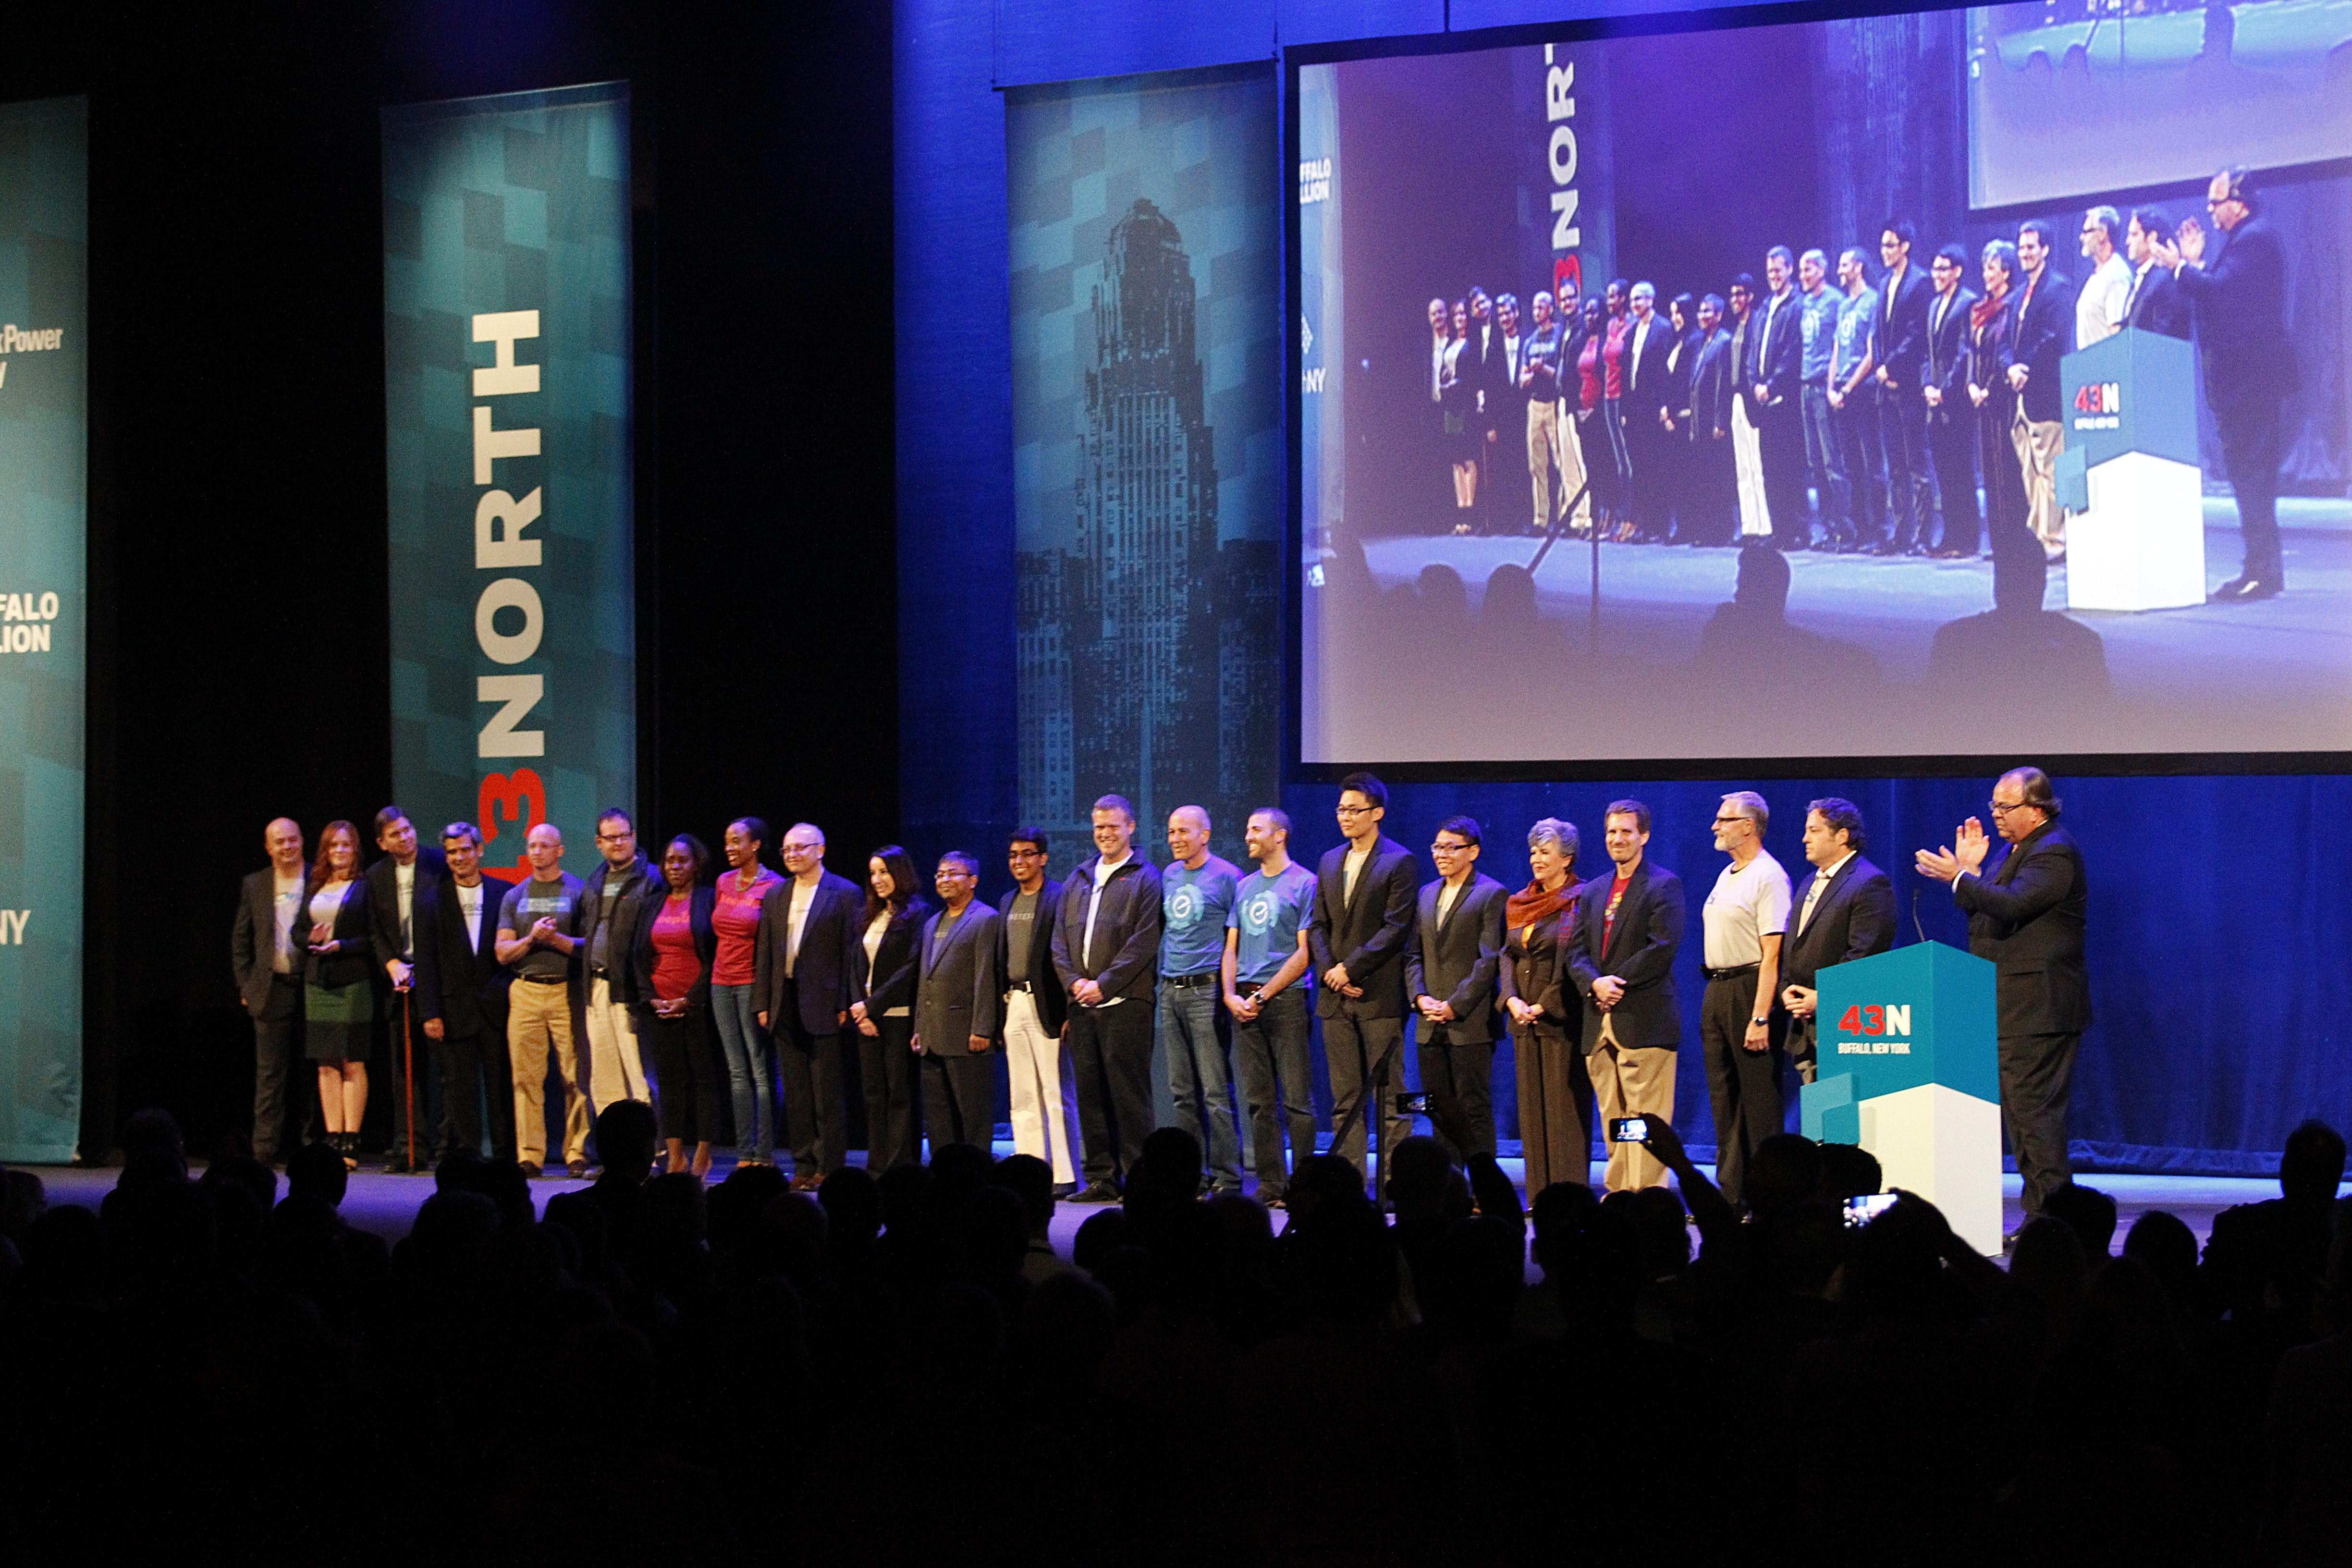 Last year, finalists in 43North business plan competition – won by ASi, a Town of Tonawanda material-shaping business – got a standing ovation at Shea's Performing Arts Center, where there will be a similar scene next Thursday for this year's finalists.